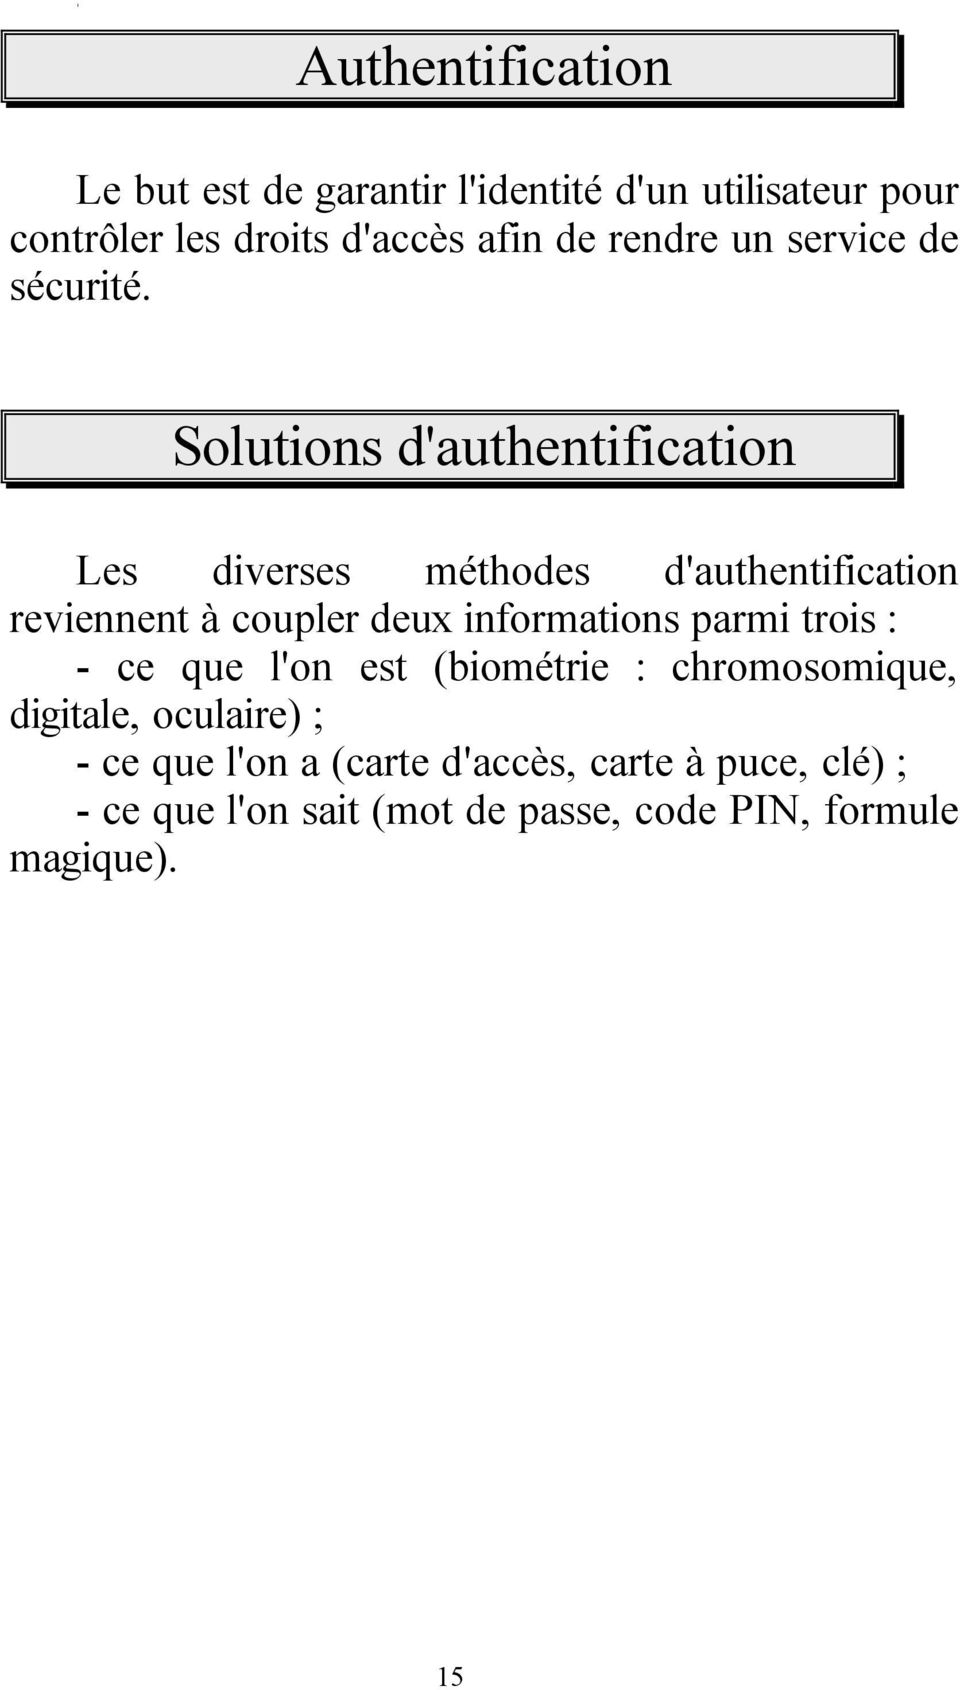 Solutions d'authentification Les diverses méthodes d'authentification reviennent à coupler deux informations